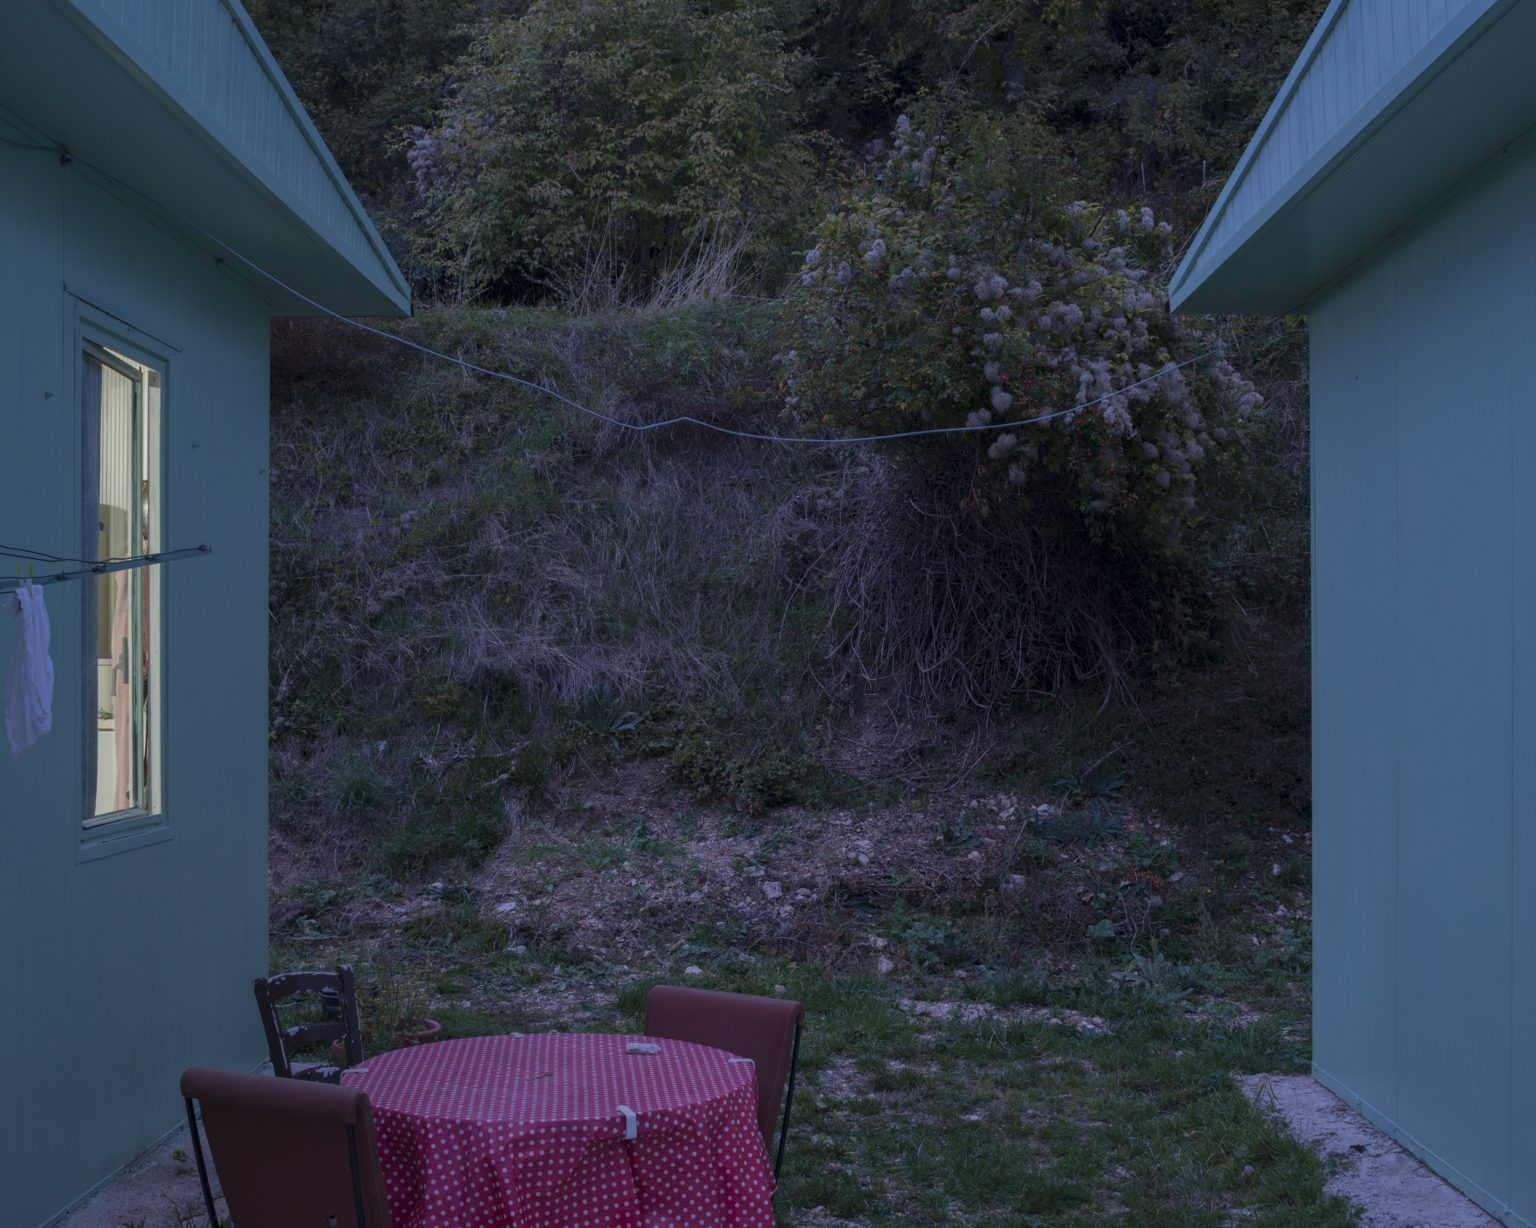 Temporary housing units erected following the earthquake of 1979 and then re-used after the earthquake of 2016. Collescille di Preci, Perugia, Italy, 2017